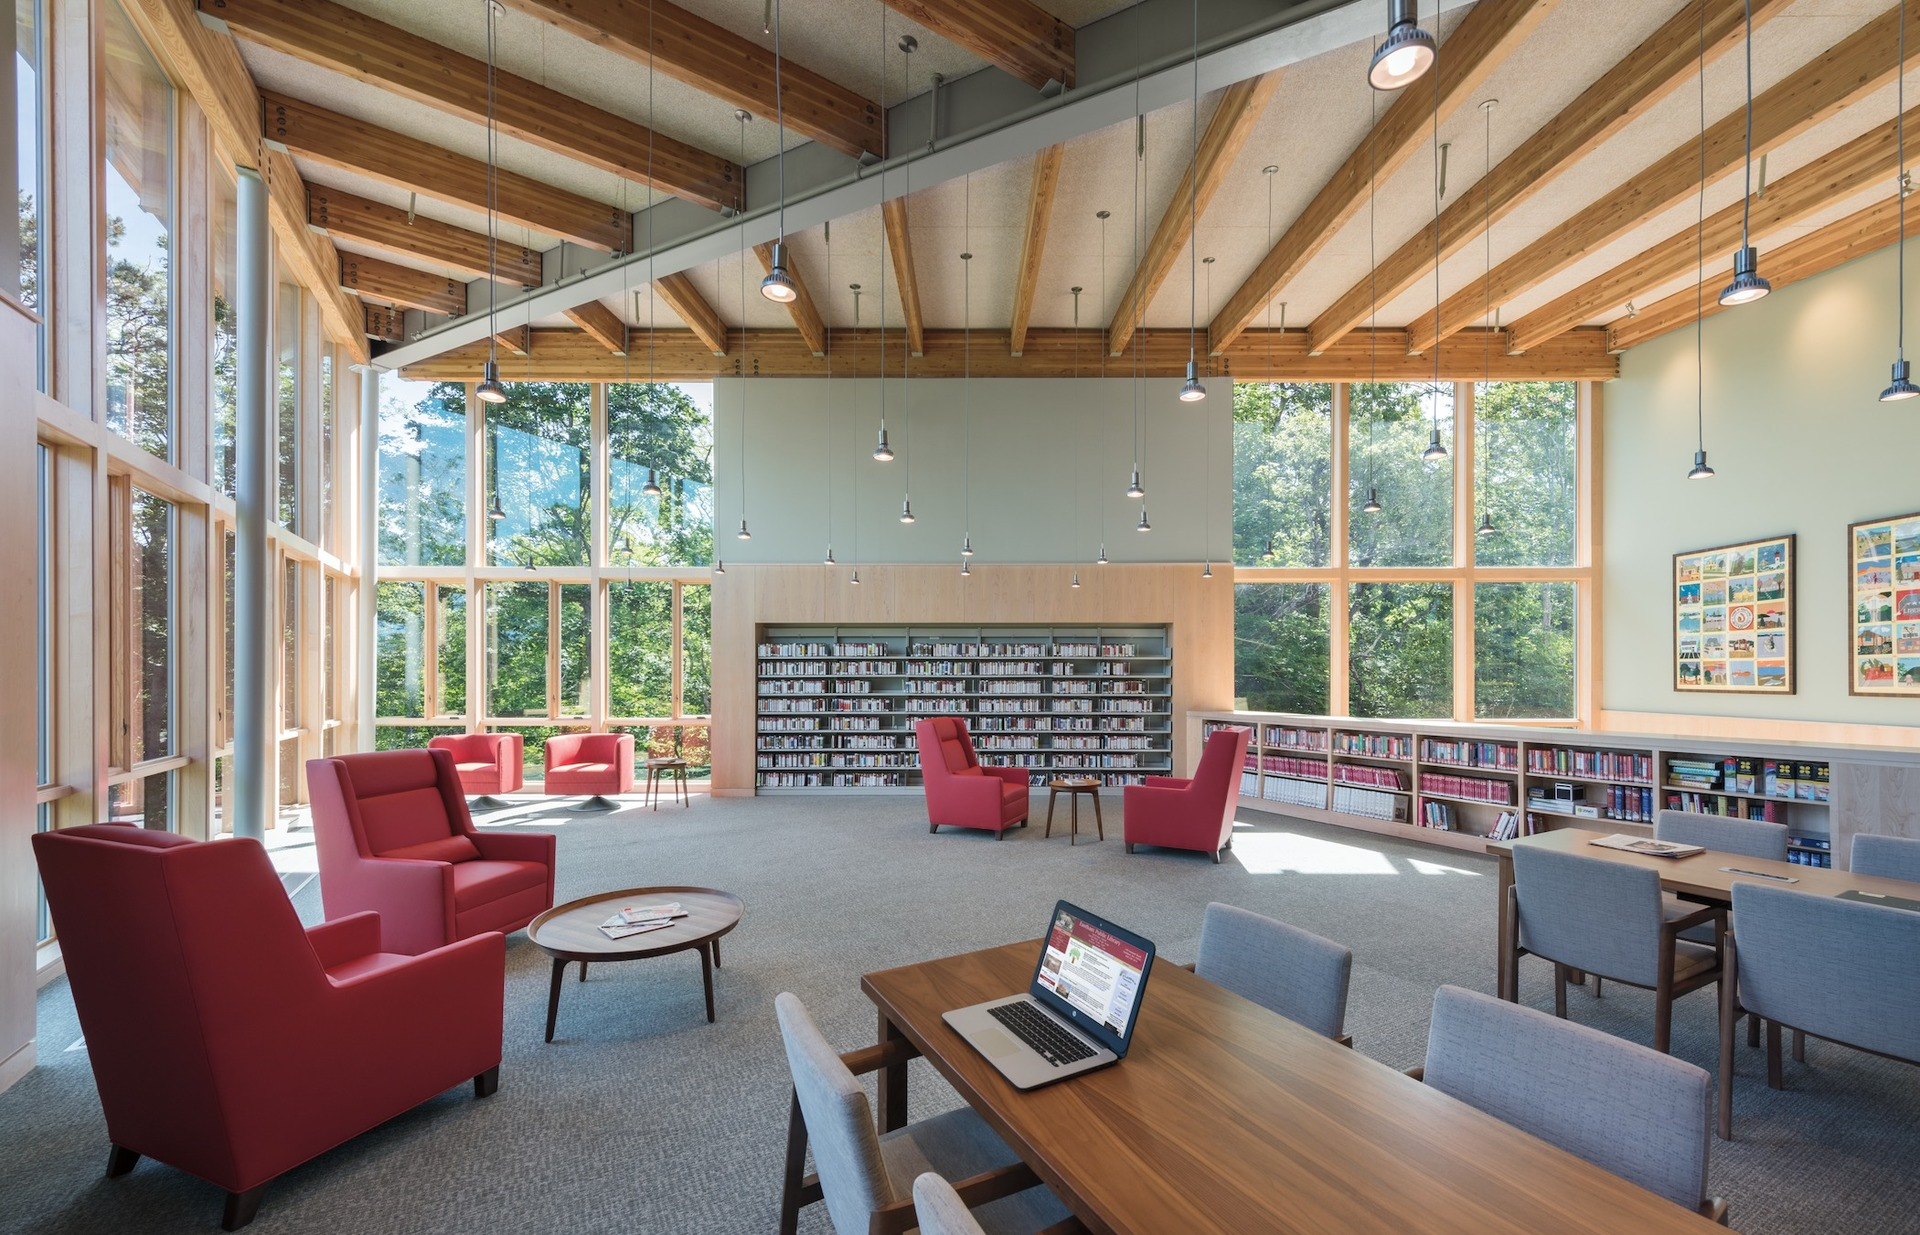 Versatile seating areas are available to everyone at Eastham Public Library. Pella provided their Architect Series® Traditional windows to allow natural light to fill the space as well as give the space a modern clean design.